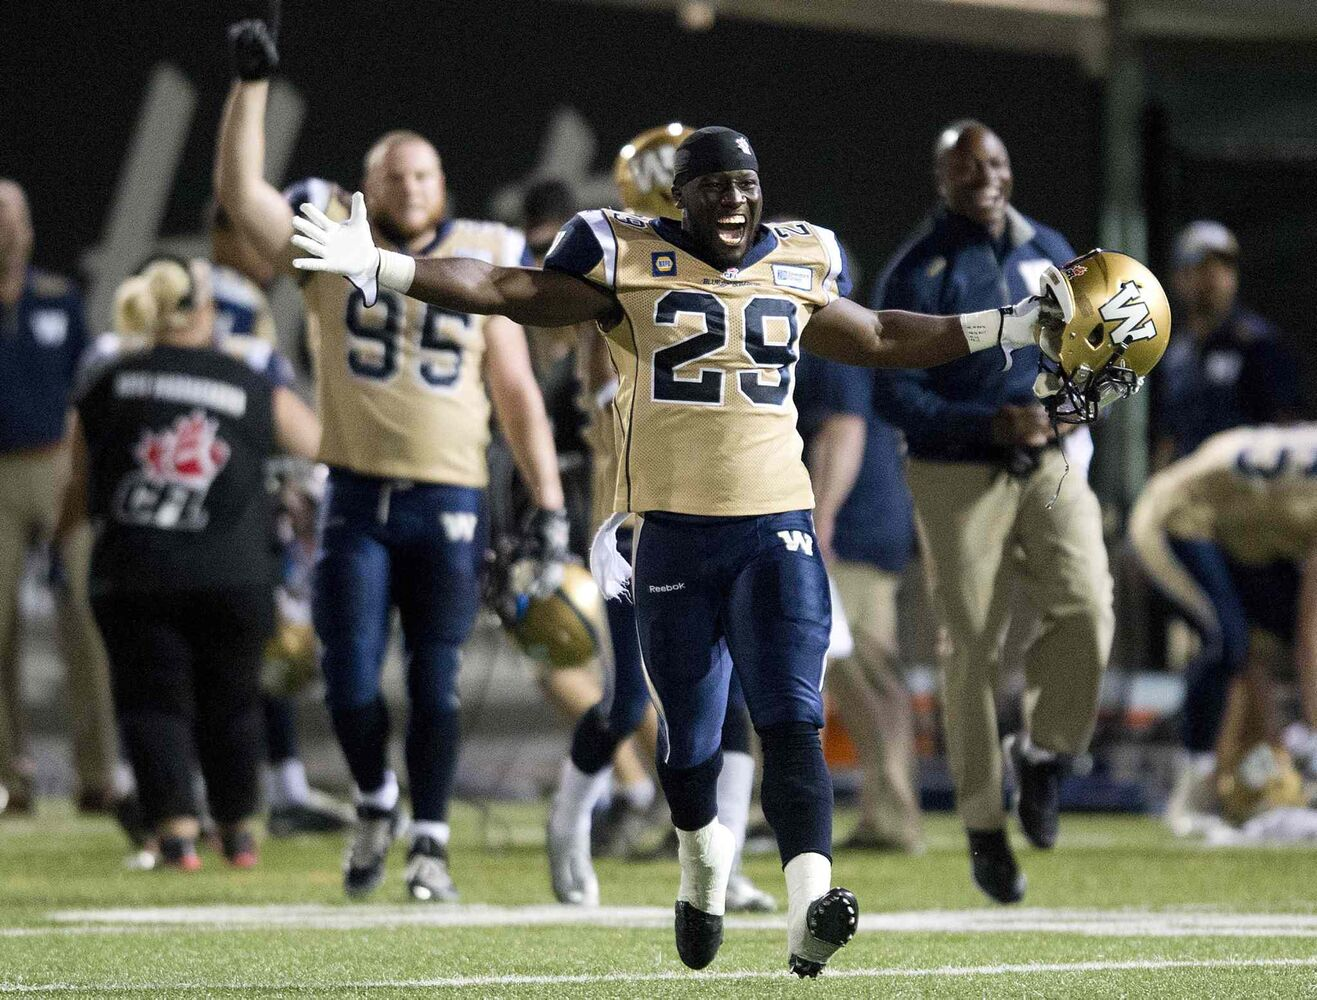 Winnipeg Blue Bombers' running back Carl Volny (29) celebrates after defeating the Hamilton Tiger-Cats 27-26 Thursday night. (Nathan Denette / The Canadian Press)